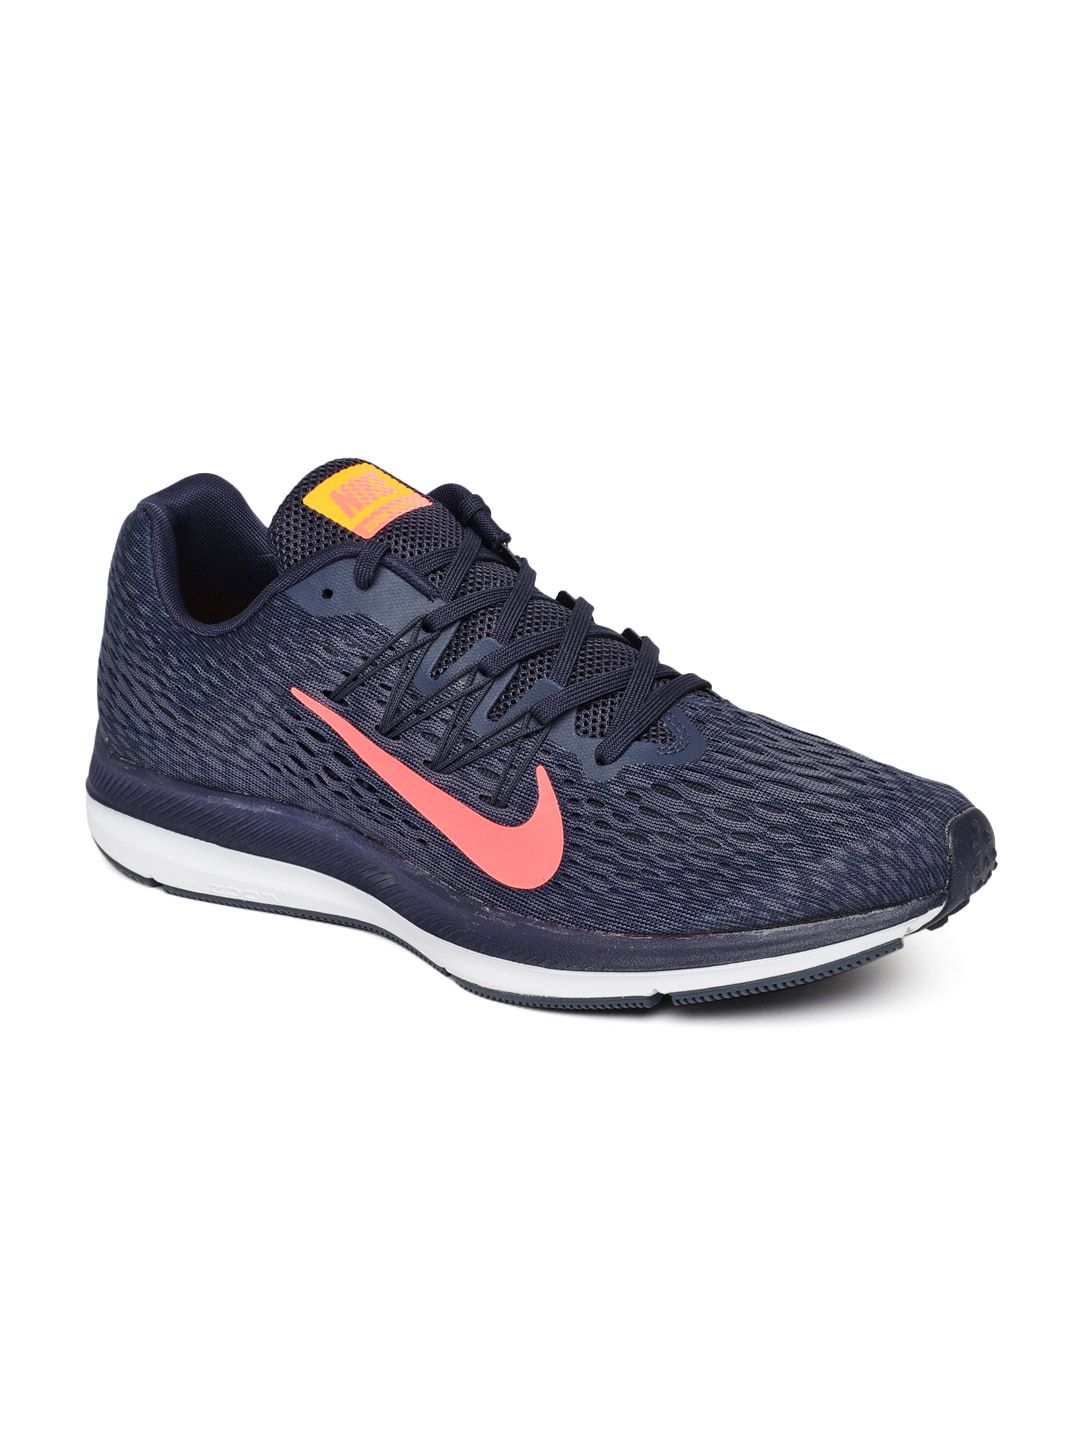 235846ca11c Nike Men Blue Running Shoes